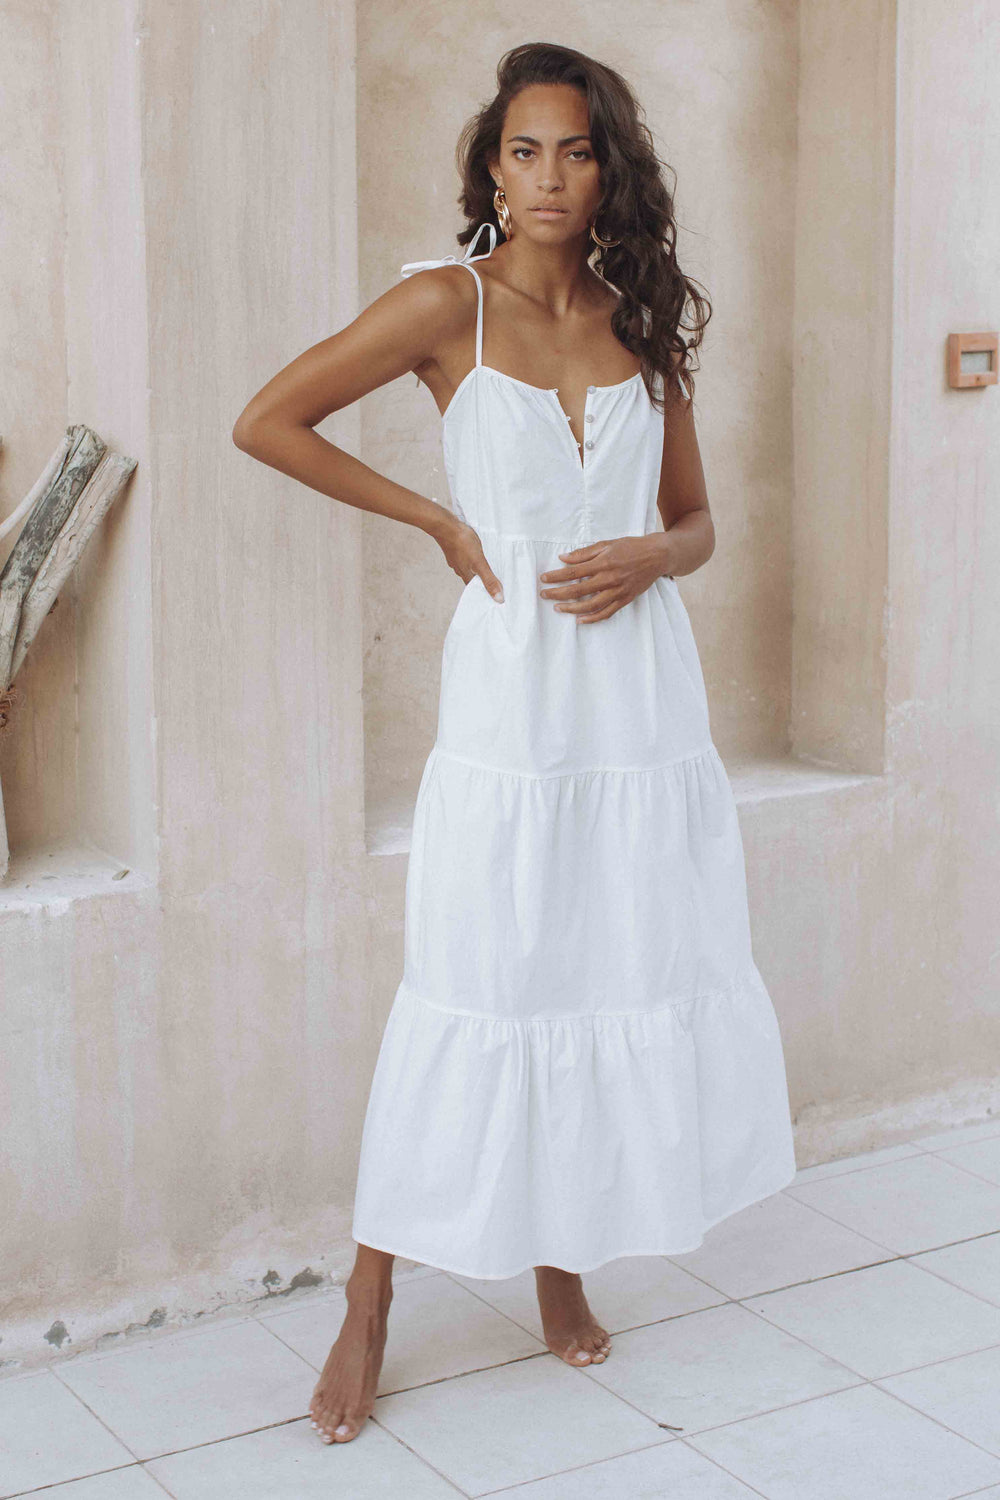 ST TROPEZ MAXI DRESS - WHITE (6107819606194)